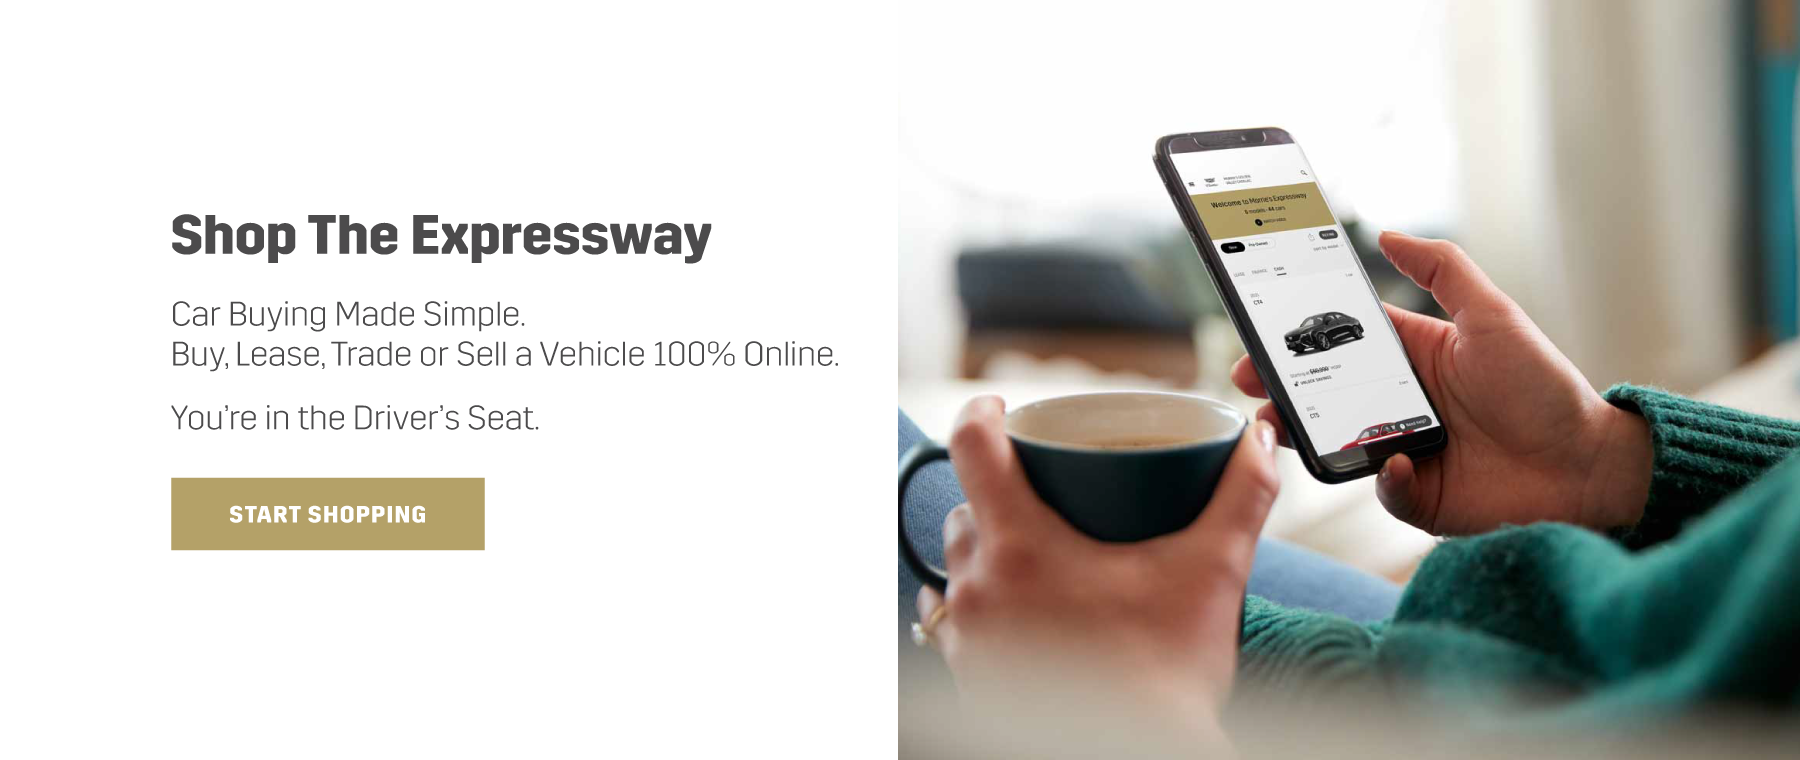 Shop The Expressway. Car Buying Made Simple.